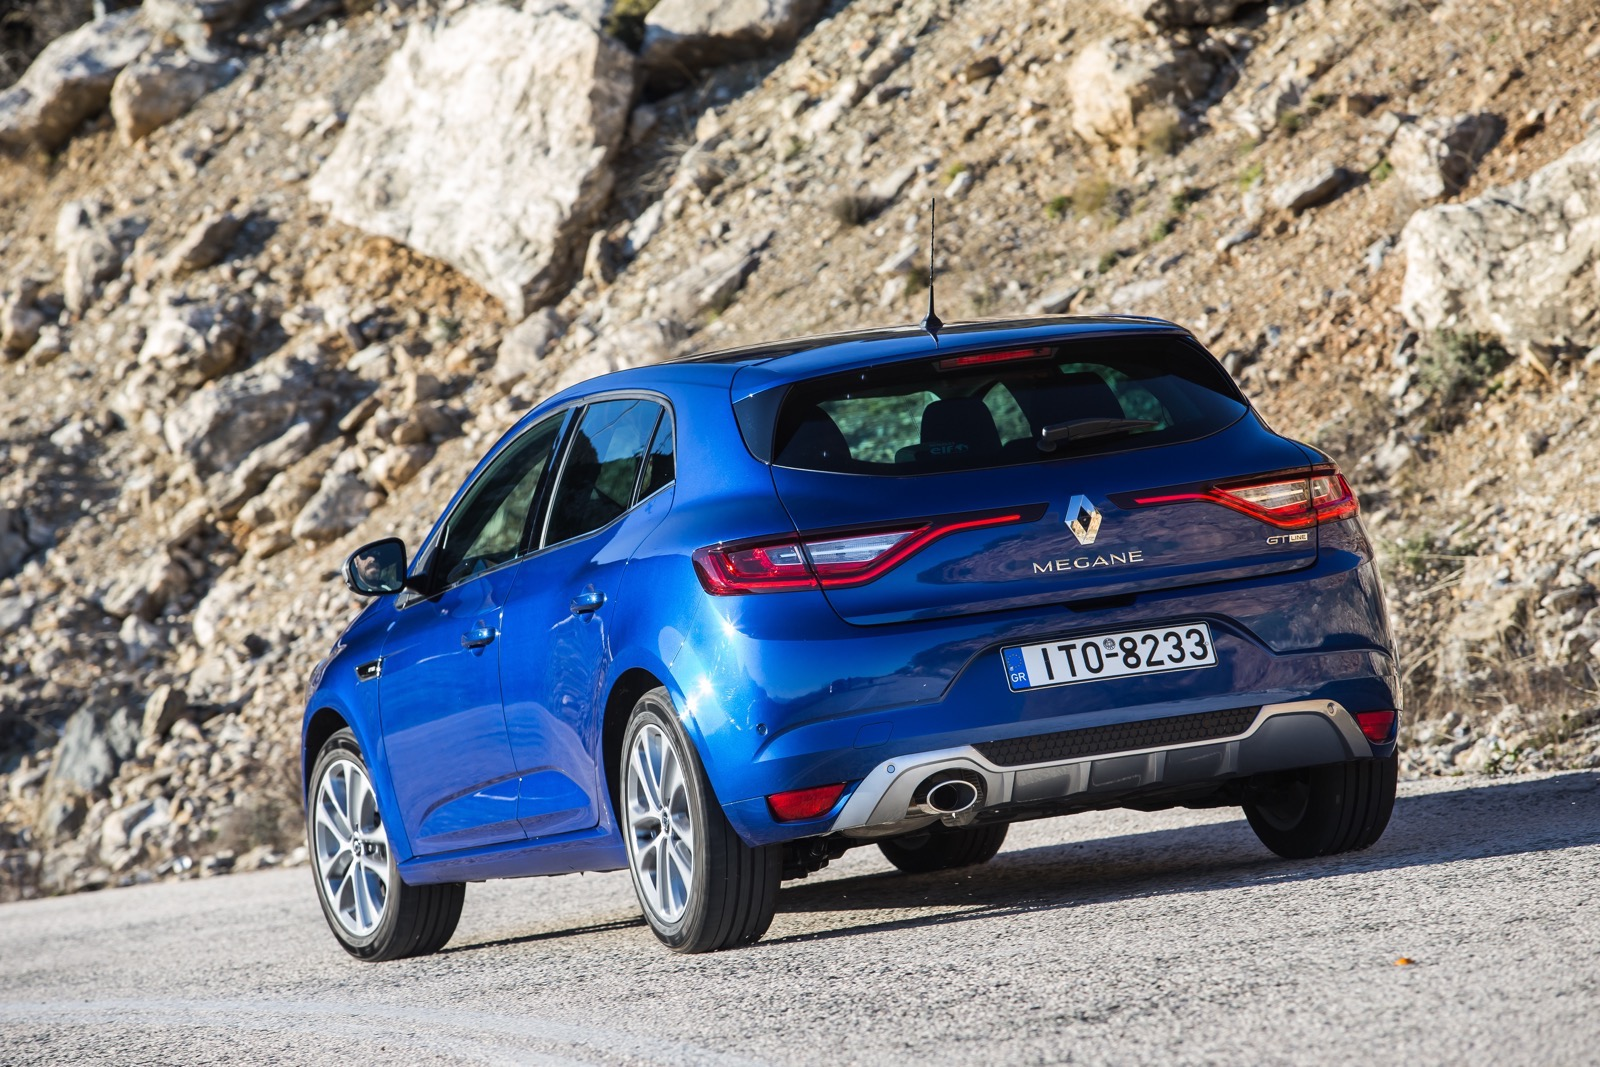 First_Drive_Renault_Megane_76